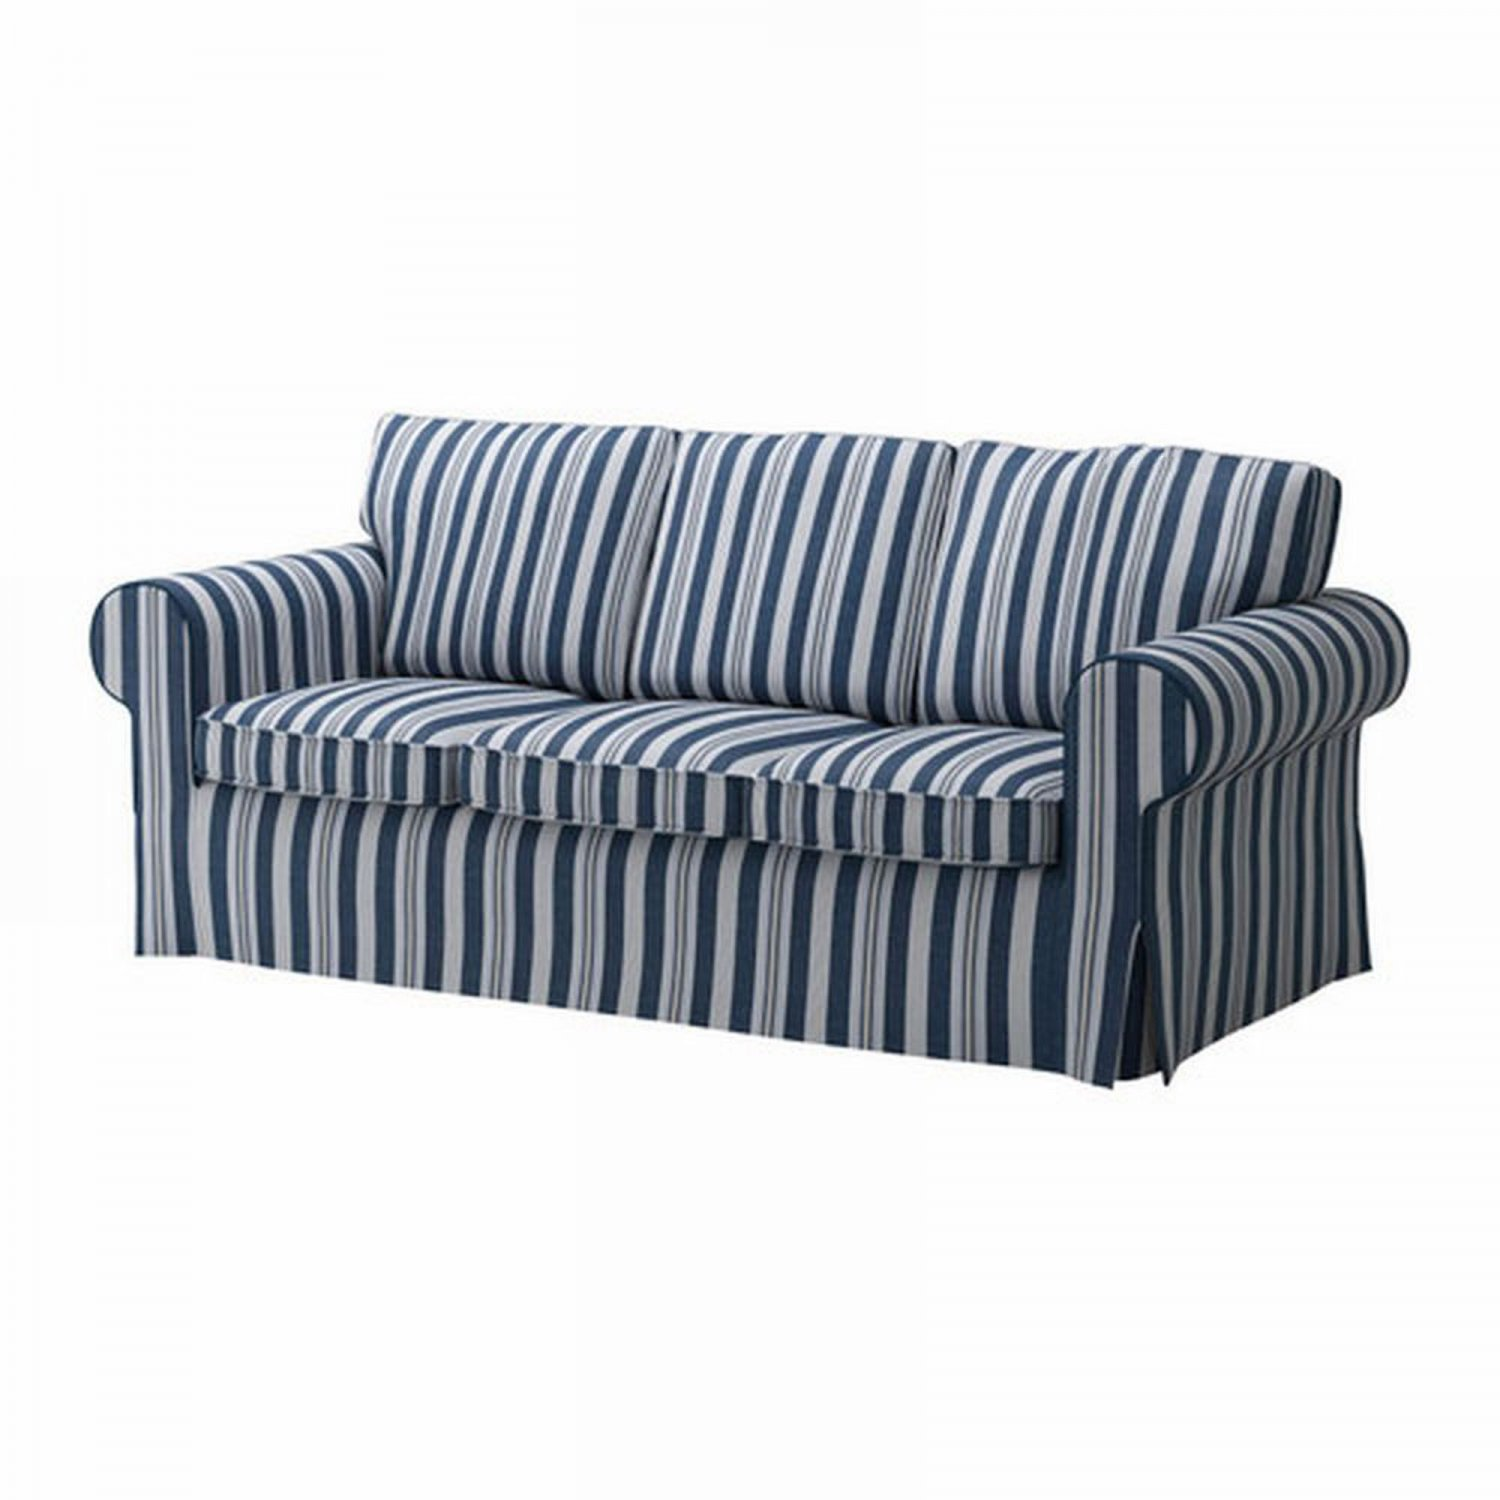 ikea ektorp 3 seat sofa cover slipcover abyn blue white stripes byn. Black Bedroom Furniture Sets. Home Design Ideas